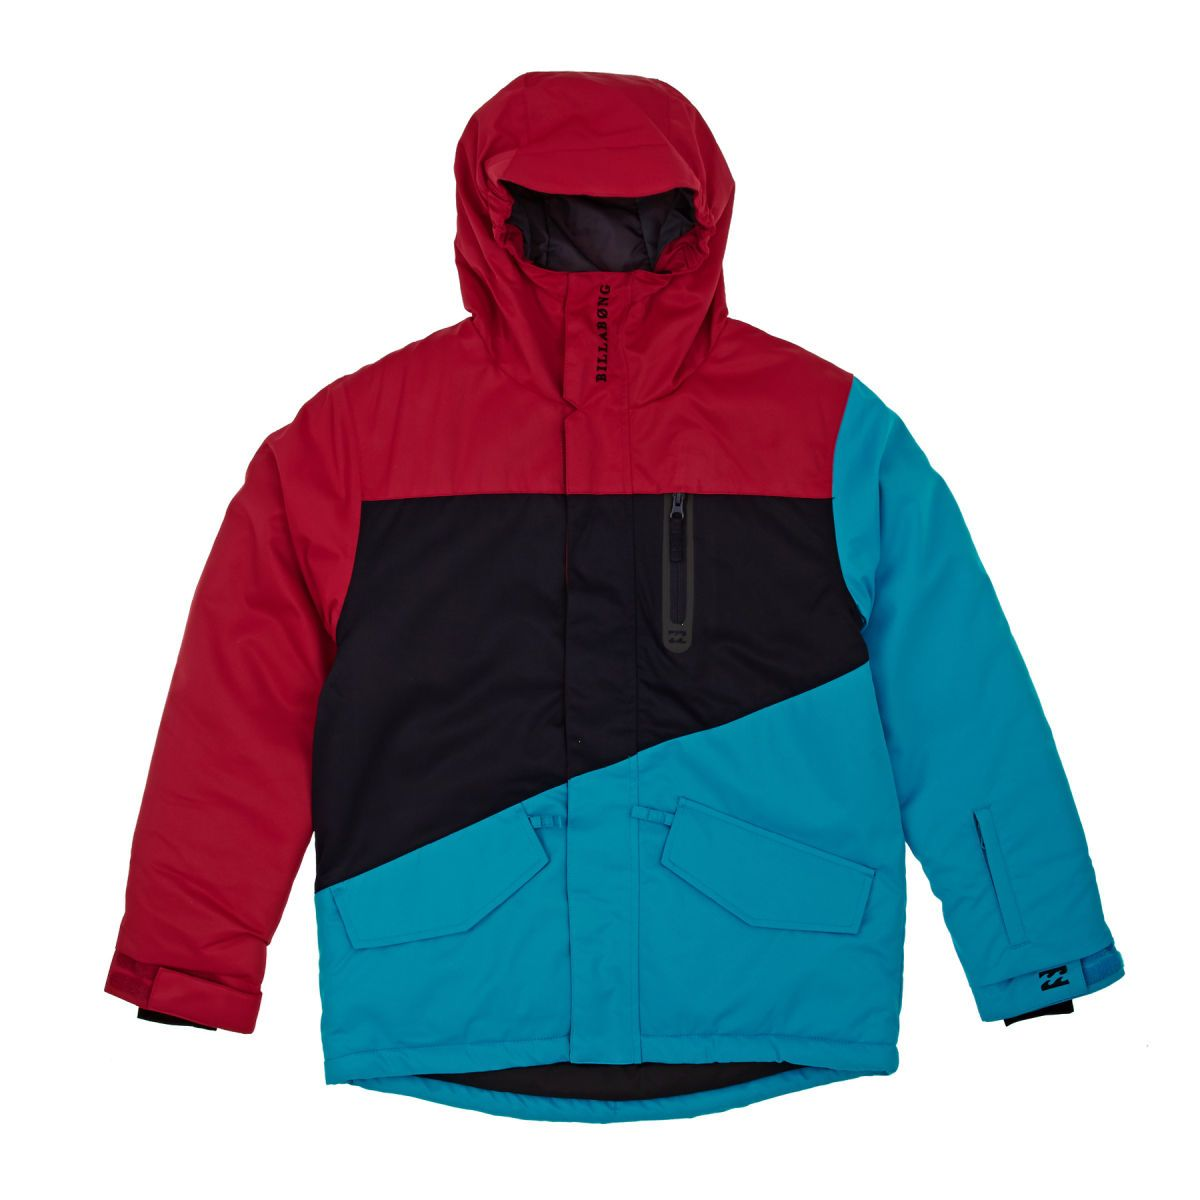 Billabong Switch Snow Jacket - Red | Free UK Delivery on All Orders